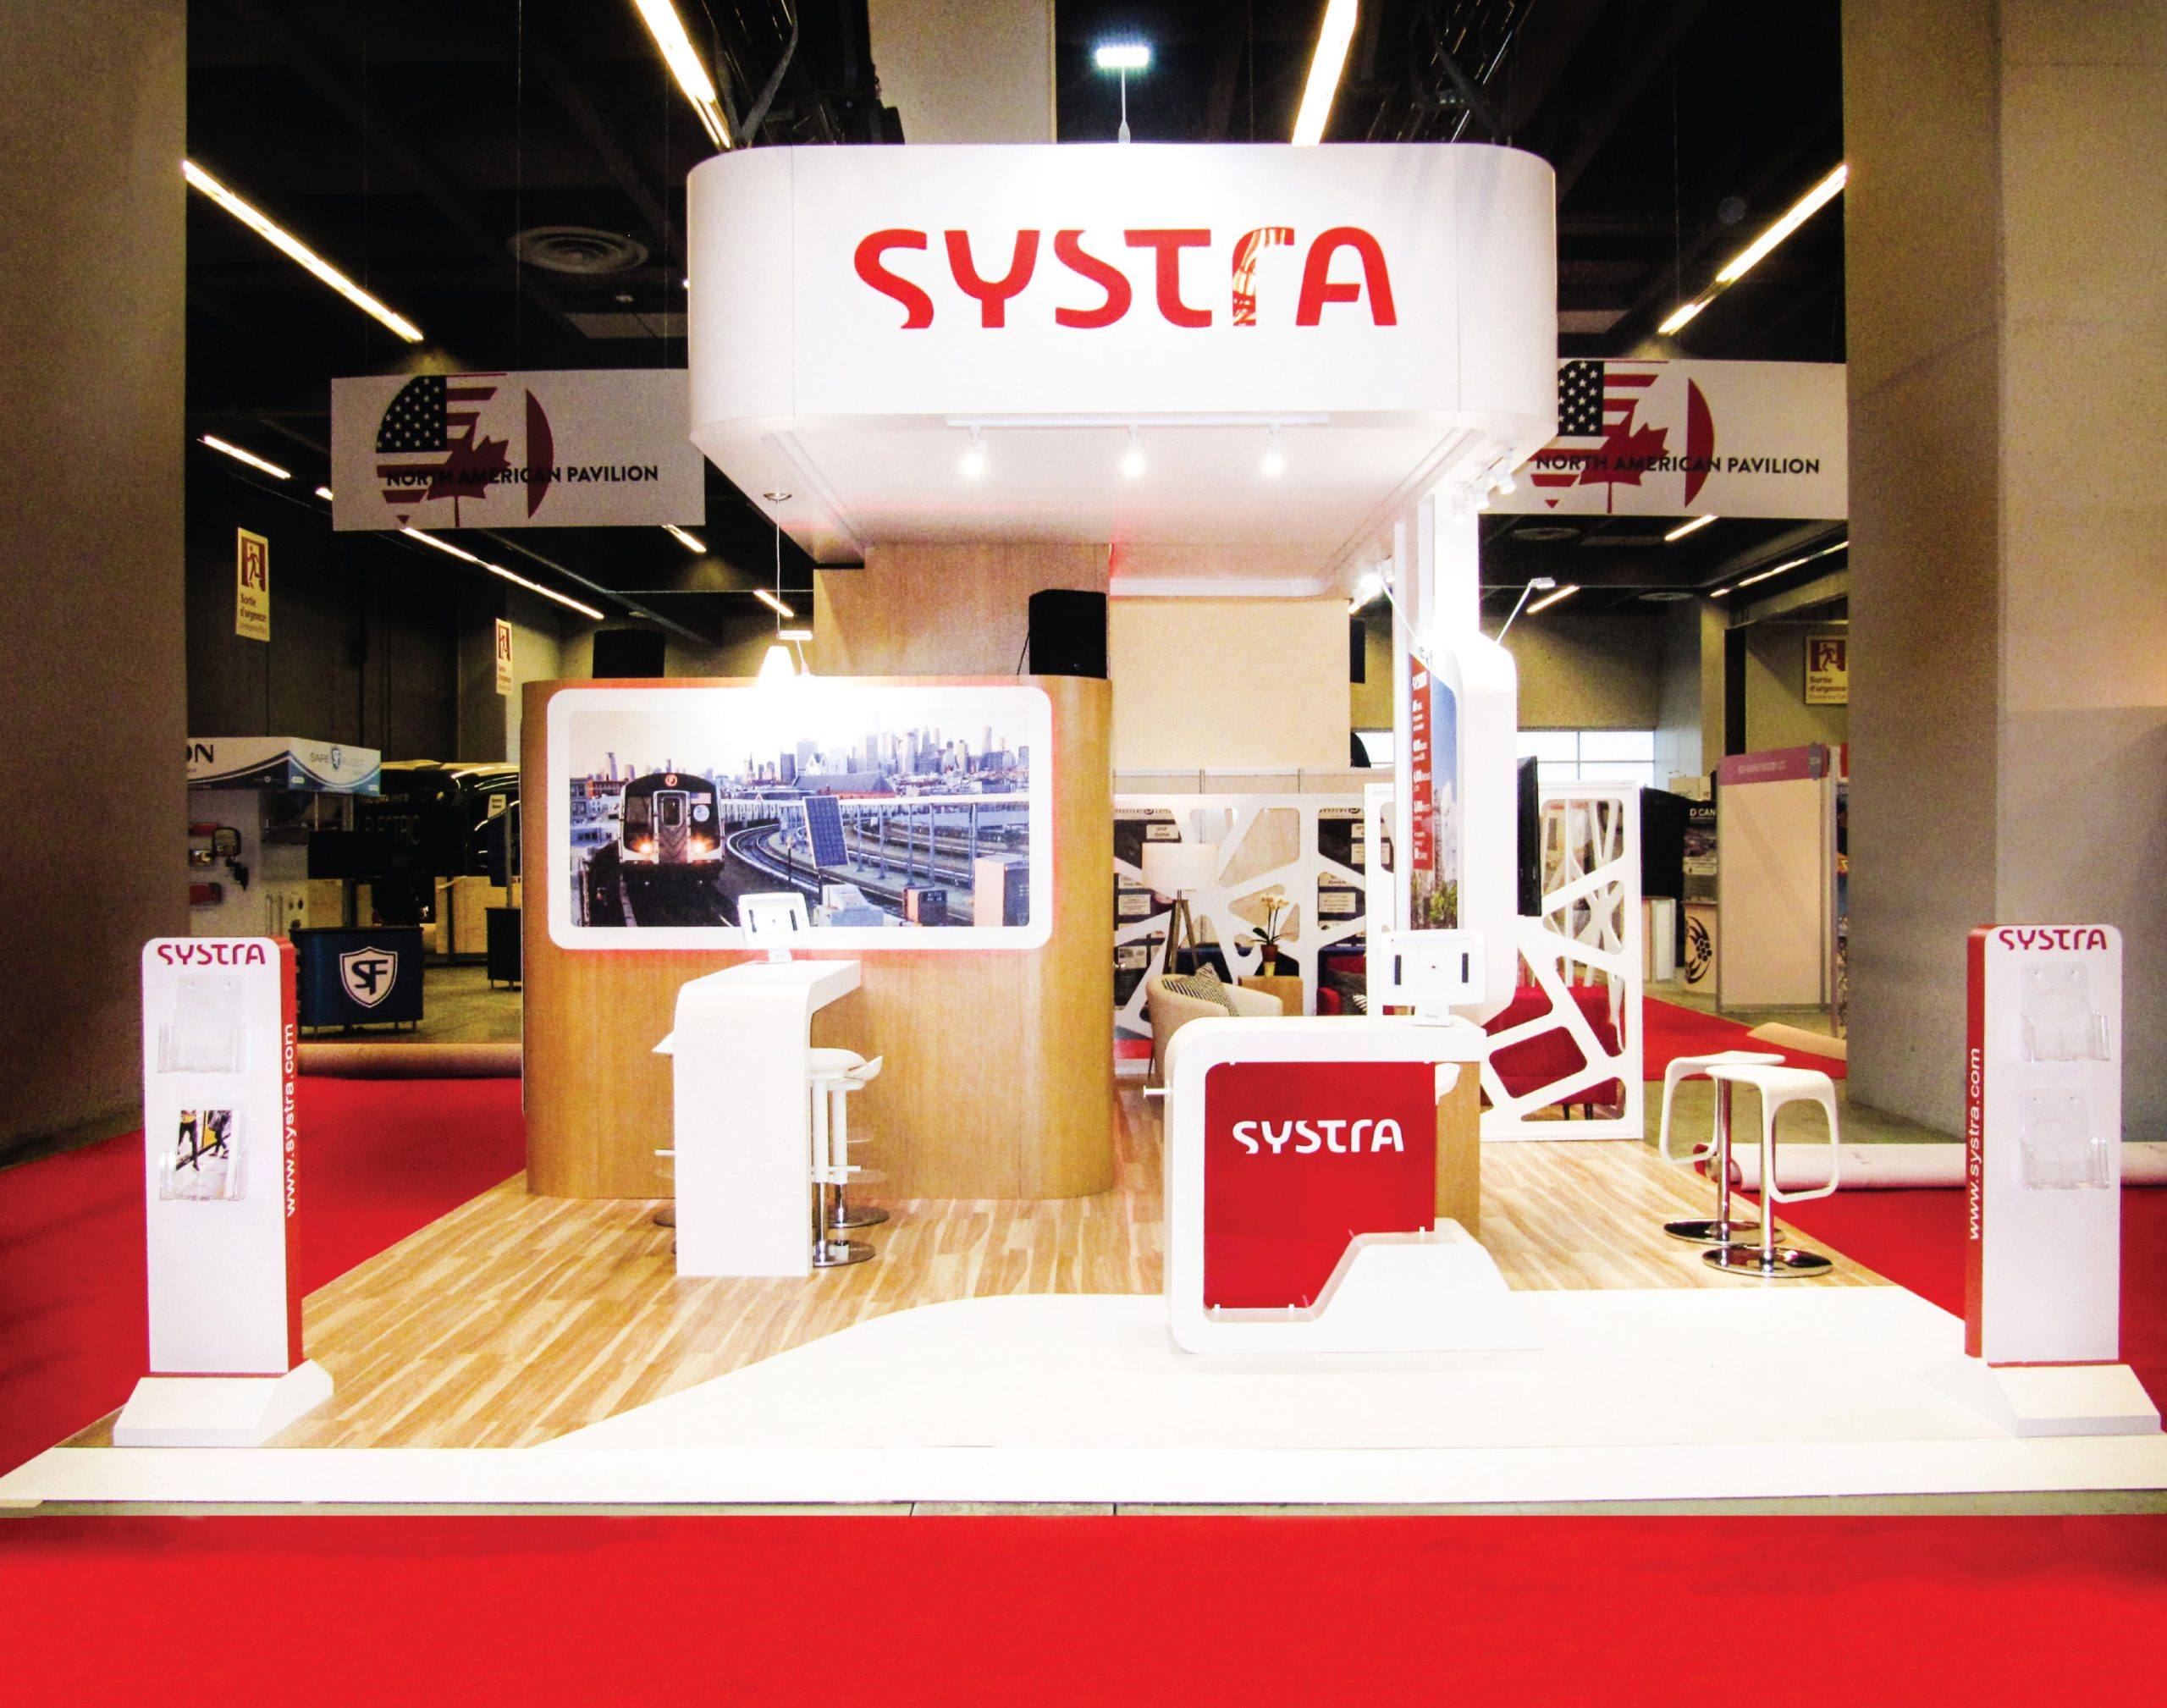 an image of the Systra activation, with the custom desk and seating area